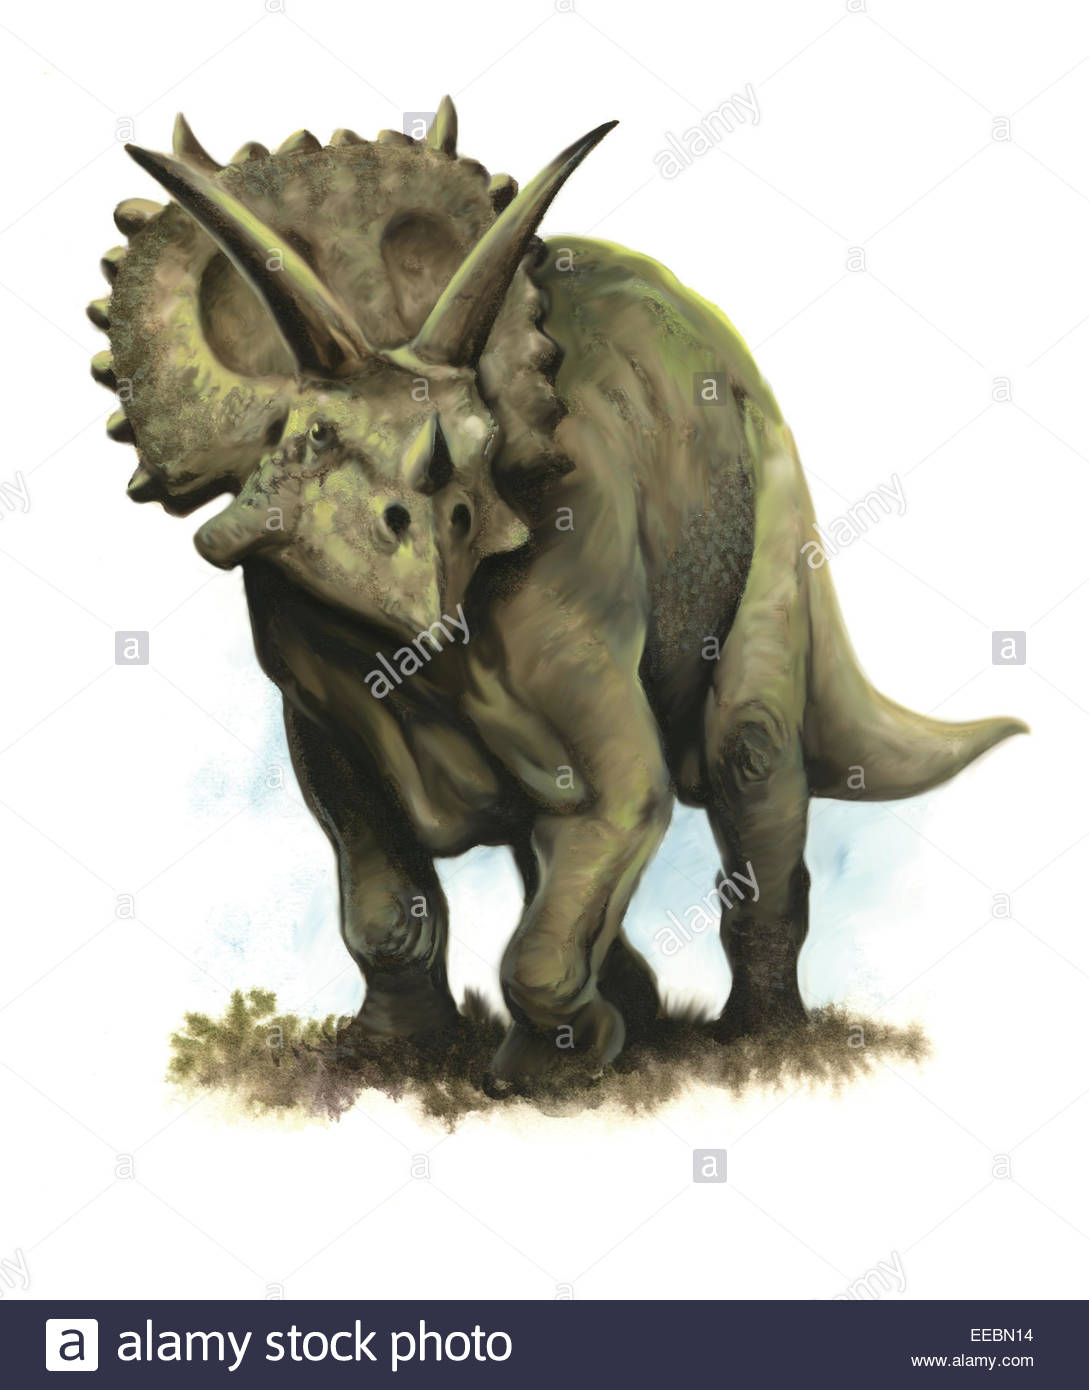 Arrhinoceratops dinosaur from the Late Cretaceous period of Alberta, Canada. Stock Photo